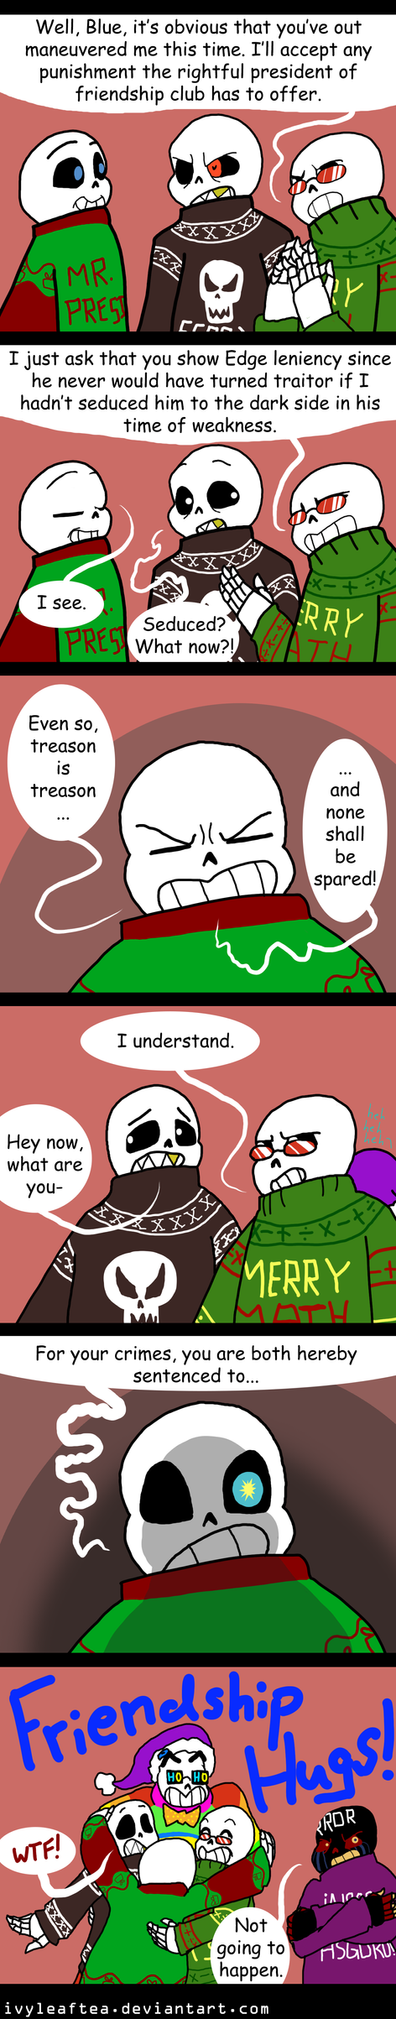 Undertale CPAU: 3-  Crime and Punishment by IvyLeafTea